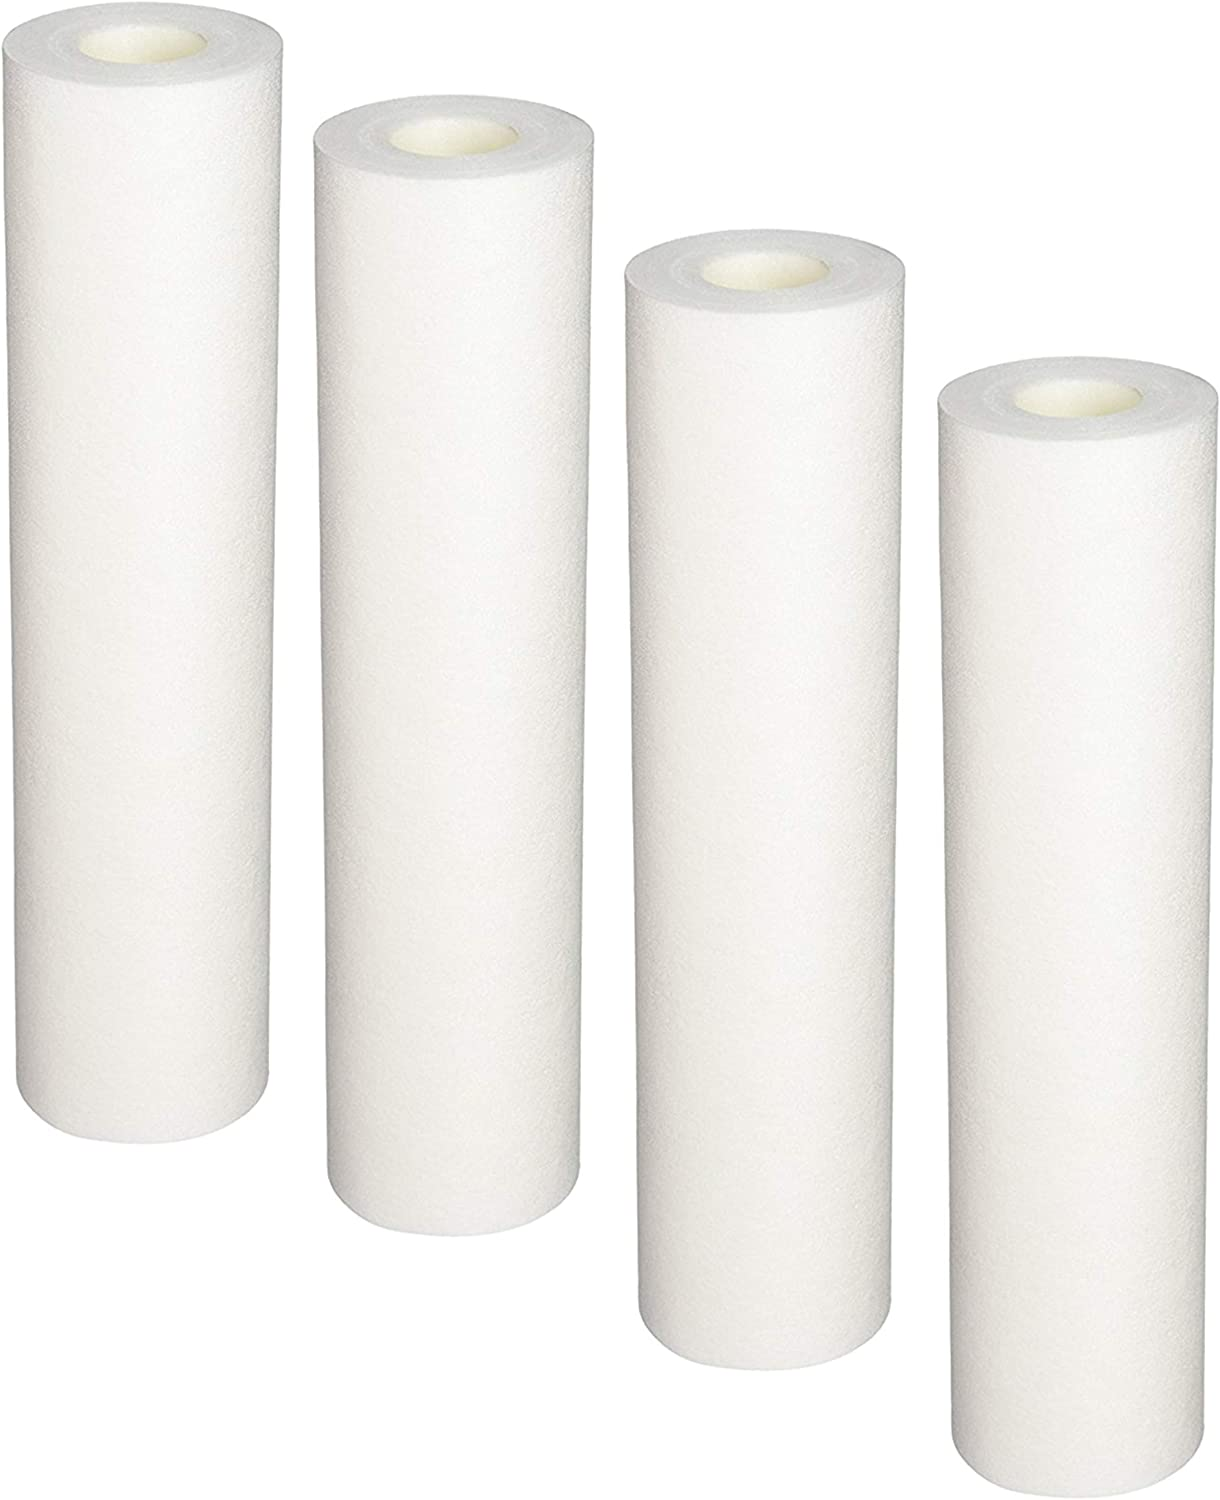 Replacement 10-Inch, Sediment Pre-filters for Whole House Water Filter Systems, 4-pack